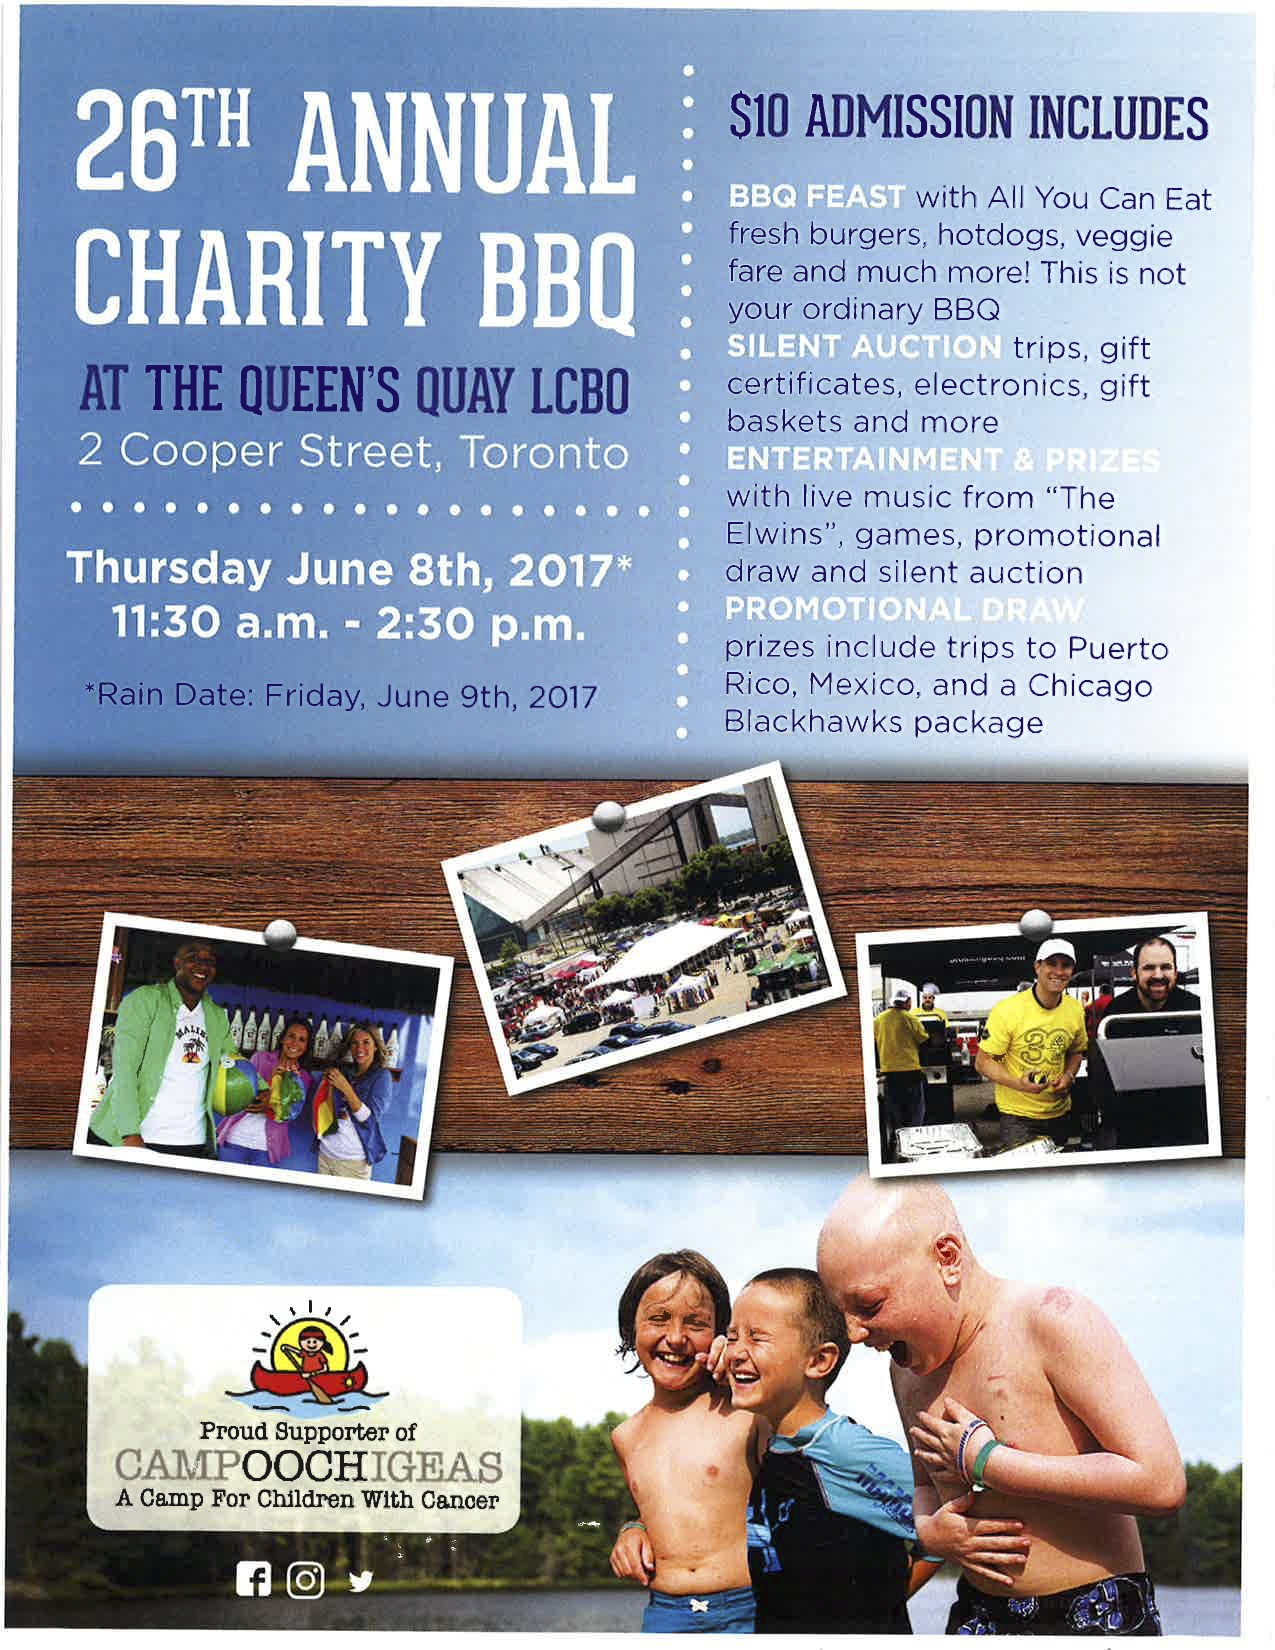 Camp Ooch 26th Annual Charity BBQ at the Queens Quay LCBO Promotion